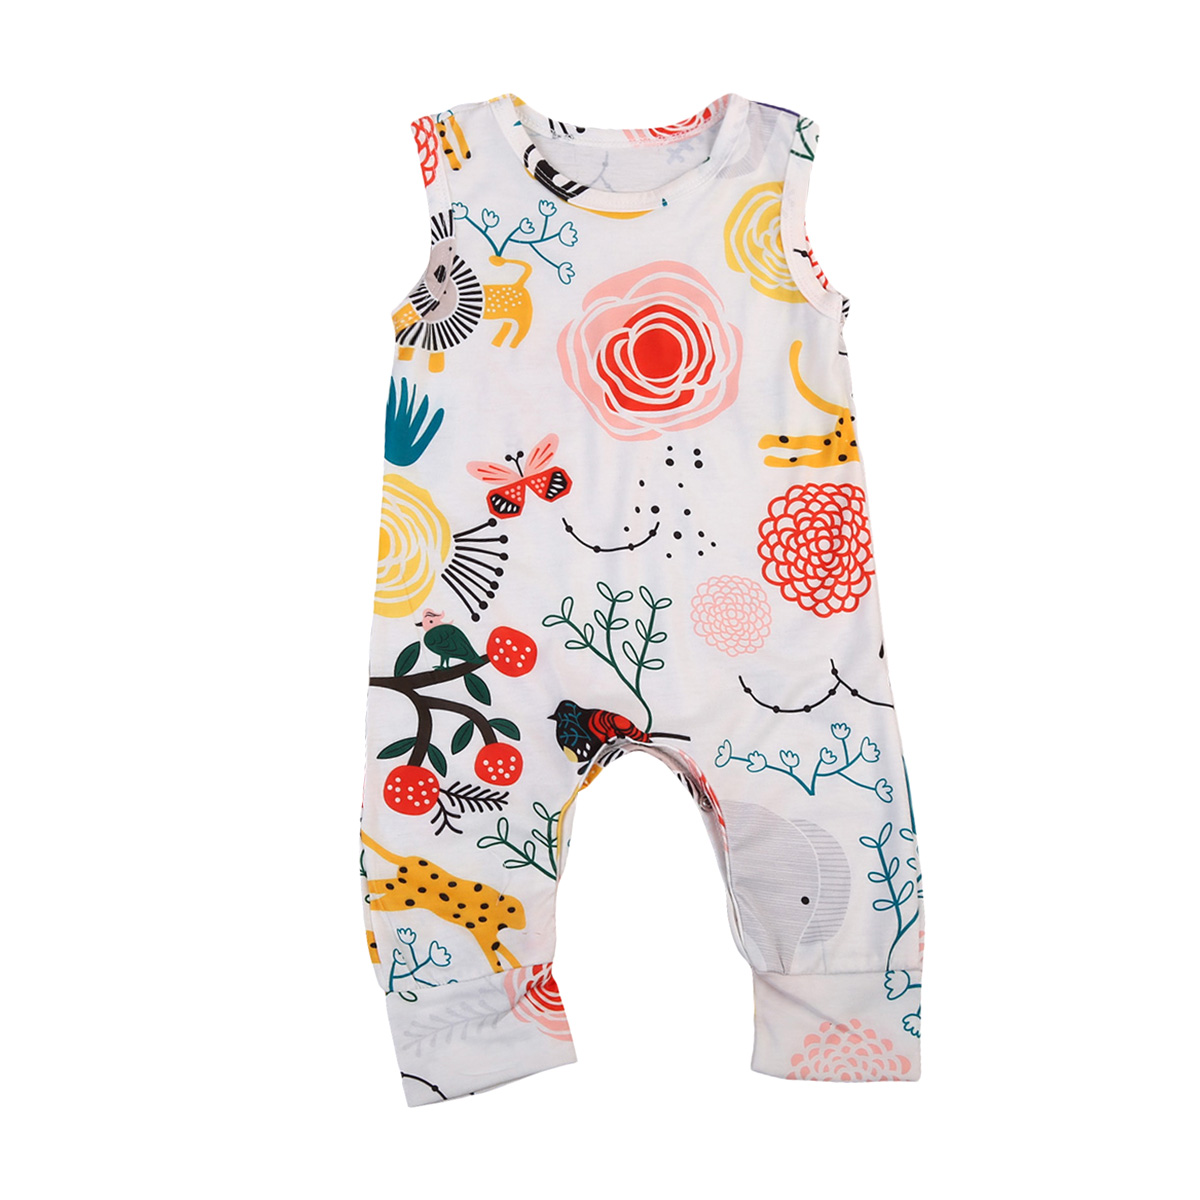 e036aeb35 Pudcoco Newborn Kid Baby Boy Girl Cute Clothes Sleeveless Jumpsuit Romper  Sunsuit Outfit Clothing New Fashion ~ Super Sale June 2019